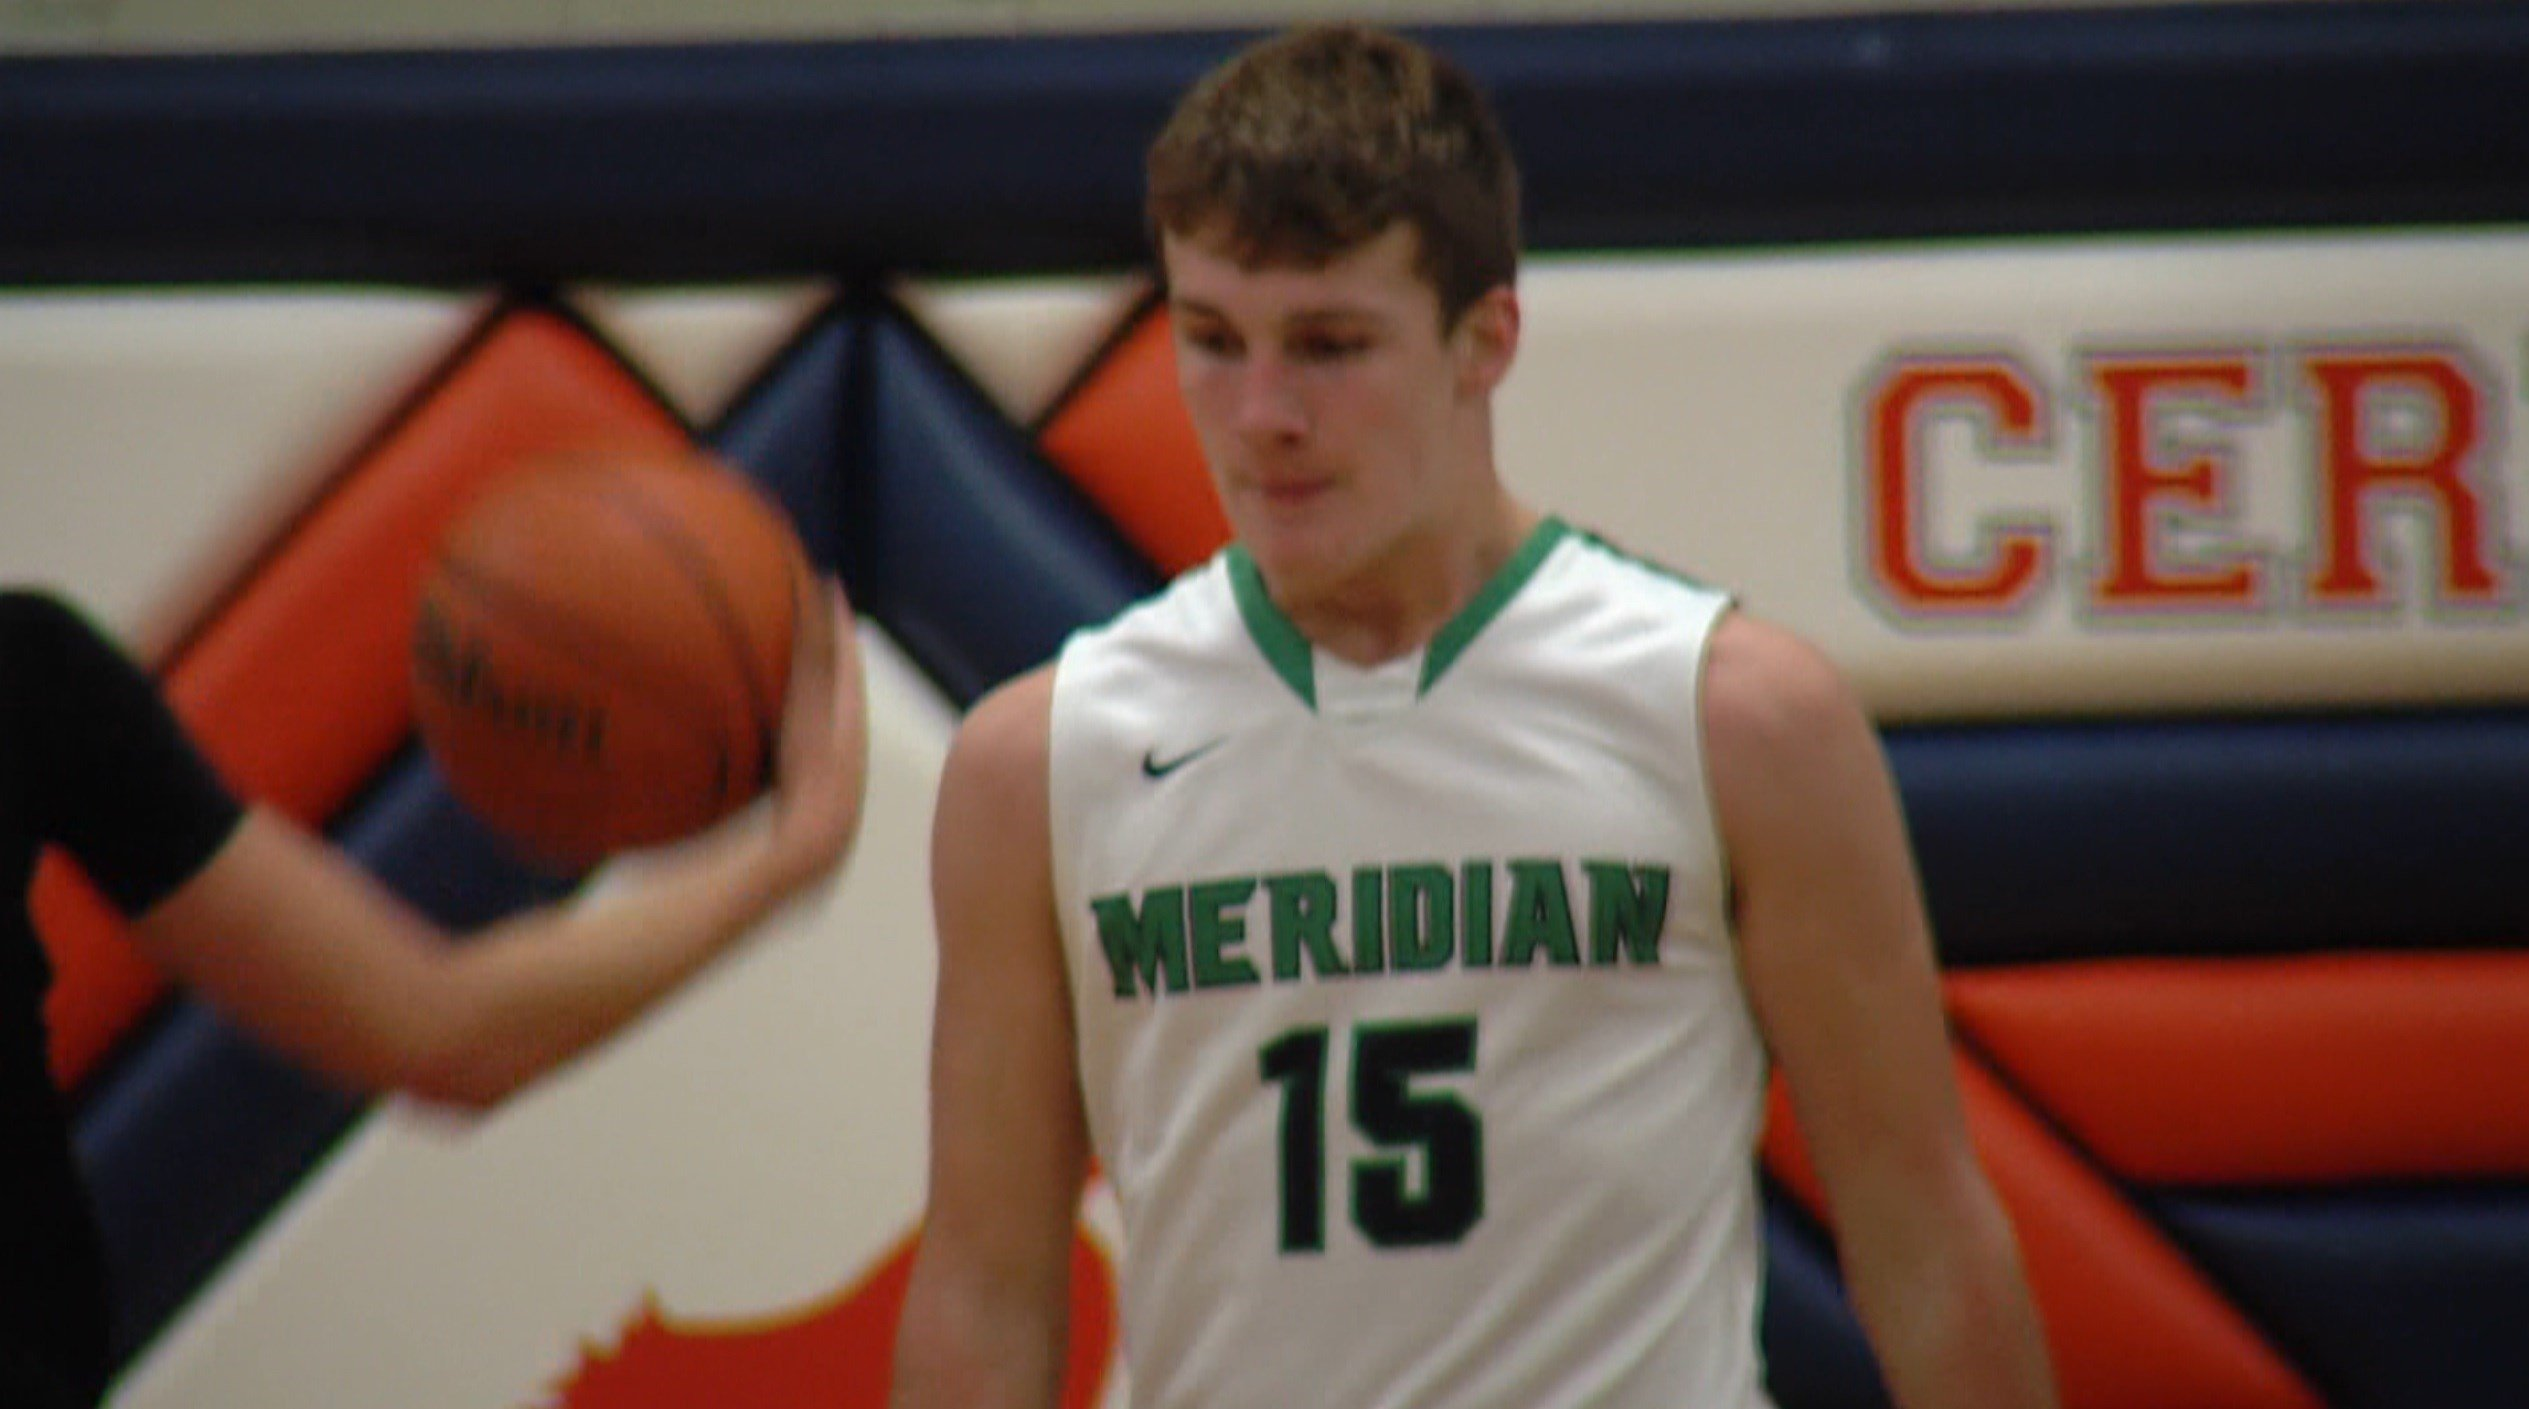 Meridian sophomore forward Jacob Jones scored 18 points in the Hawks' second round win over Tuscola and 19 points in their opening round win over Central A&M.